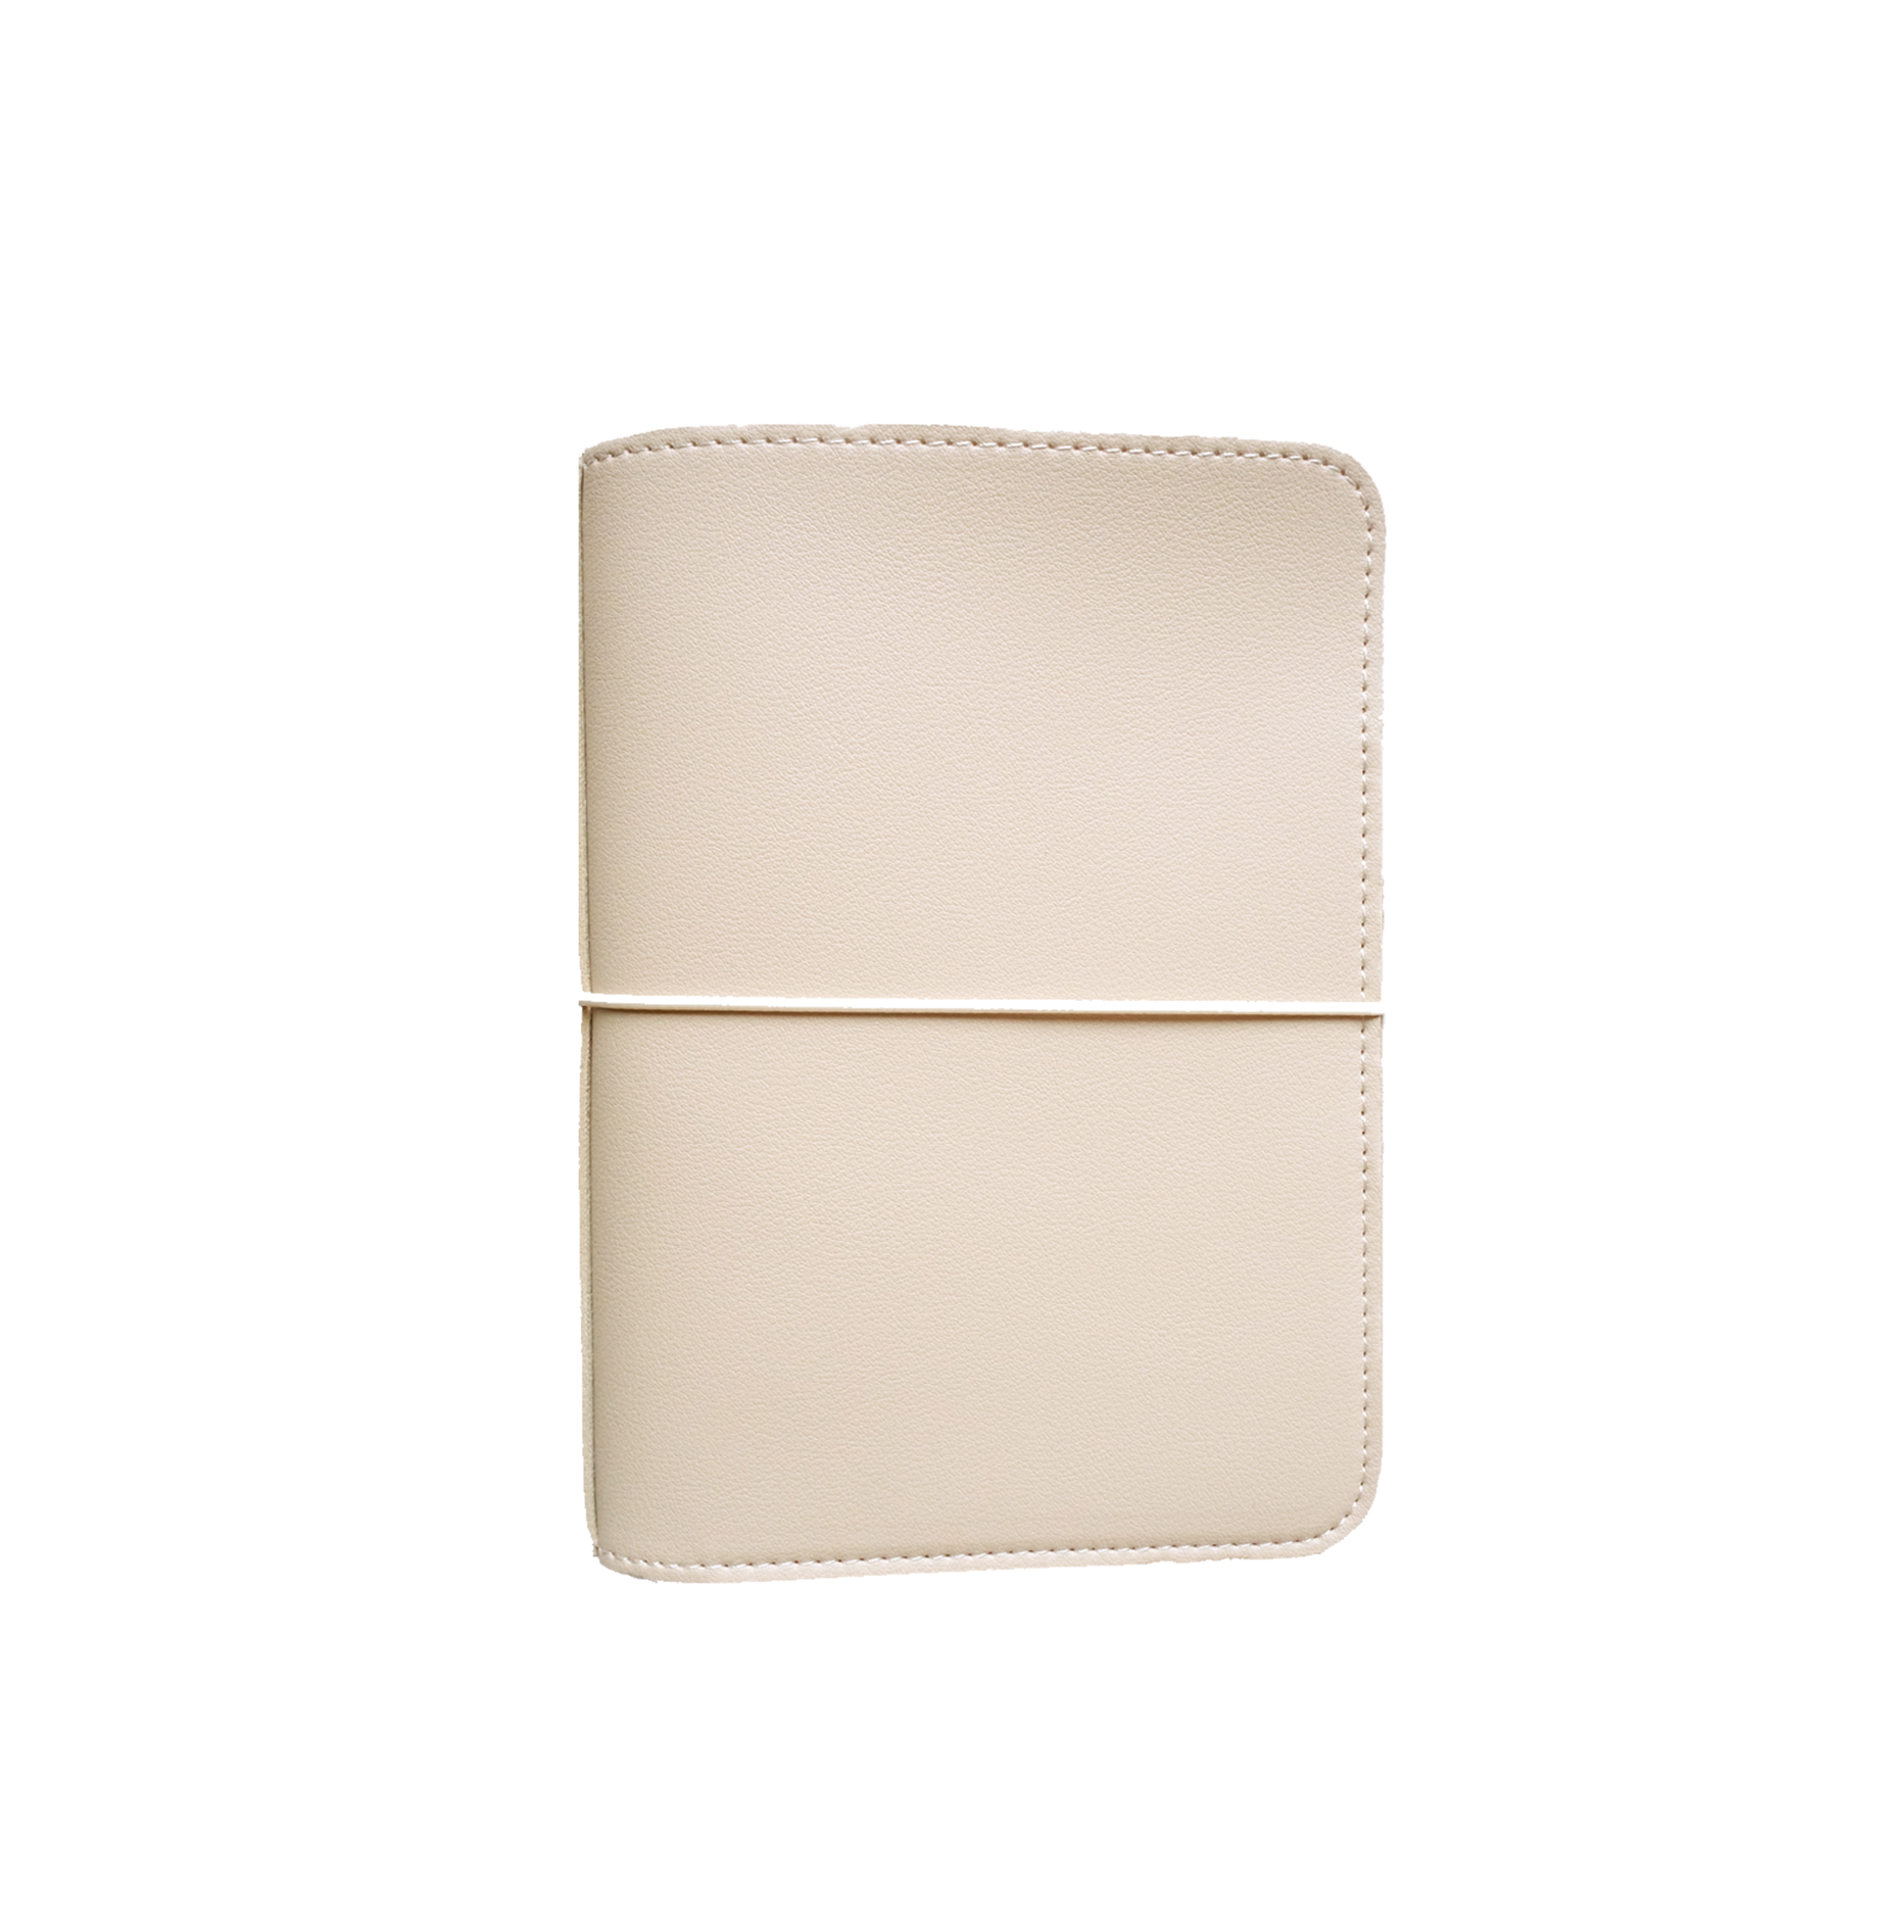 Perfect Fit B6 Travelers Notebook - Bisque